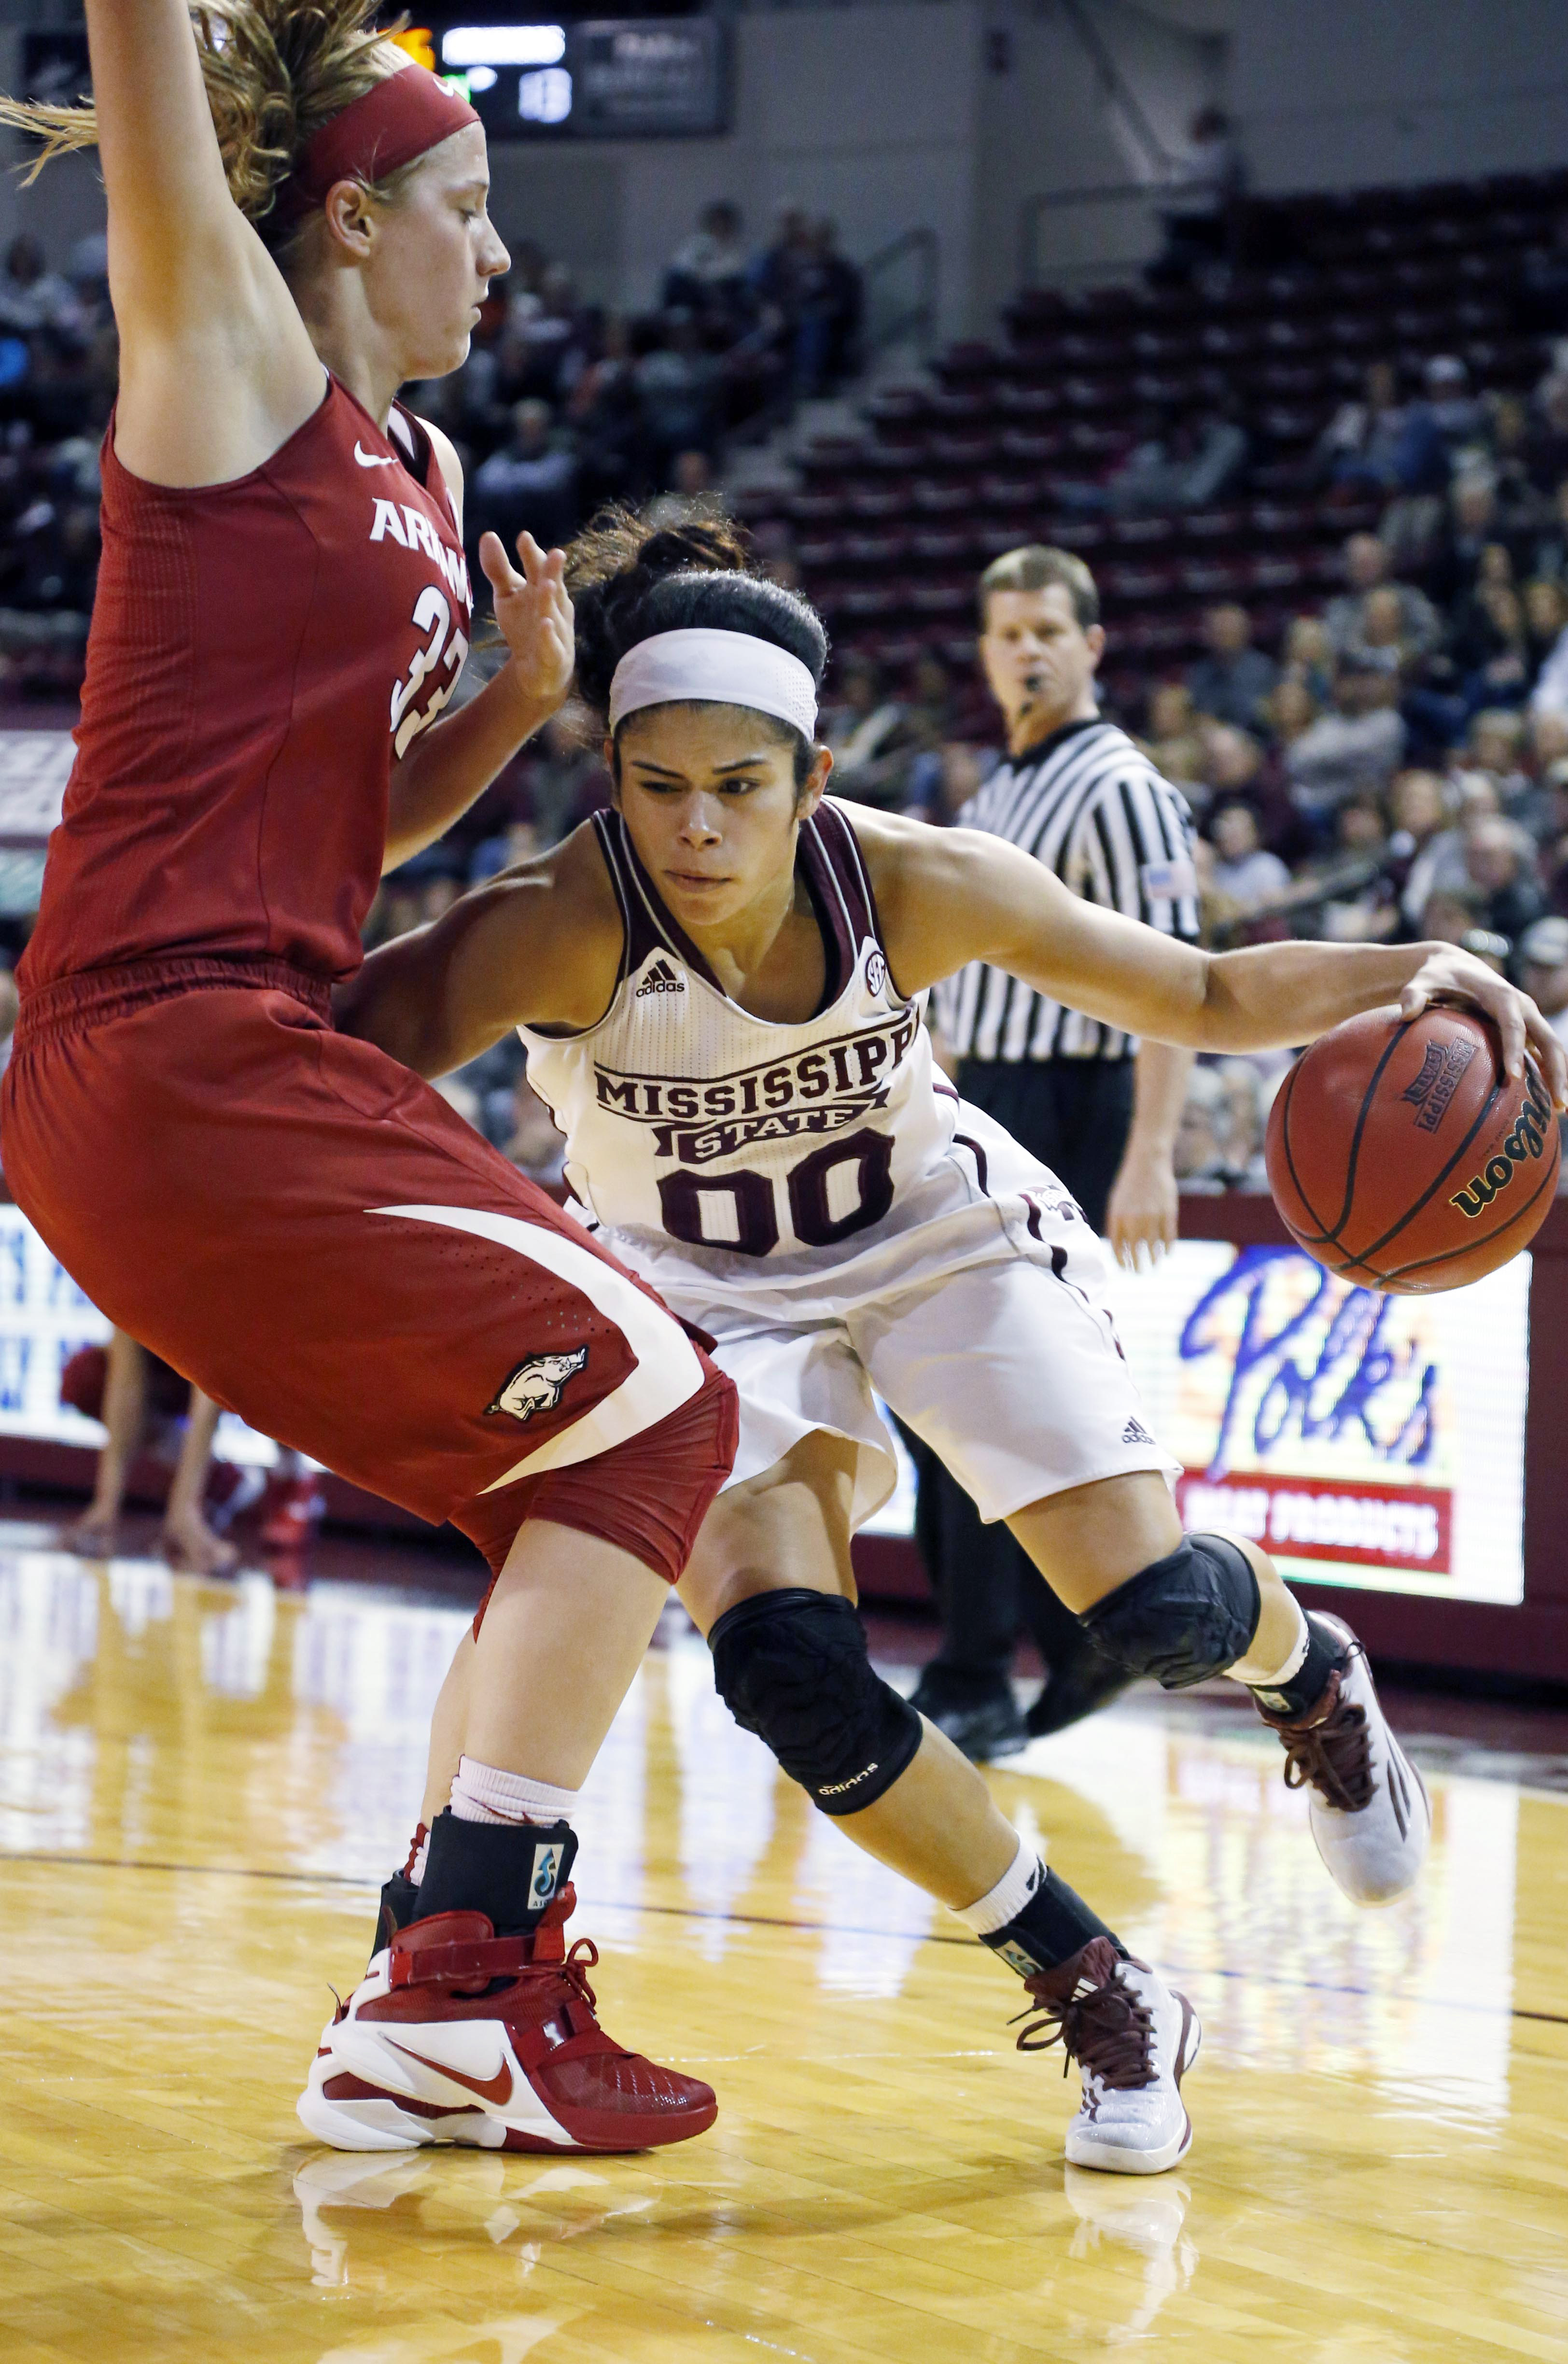 Mississippi State guard Dominique Dillingham (00) pushes her way past Arkansas forward Melissa Wolff (33) as she dribbles towards the basket in the first half of an NCAA college basketball game in Starkville, Miss., Sunday, Jan. 10, 2016. (AP Photo/Rogeli